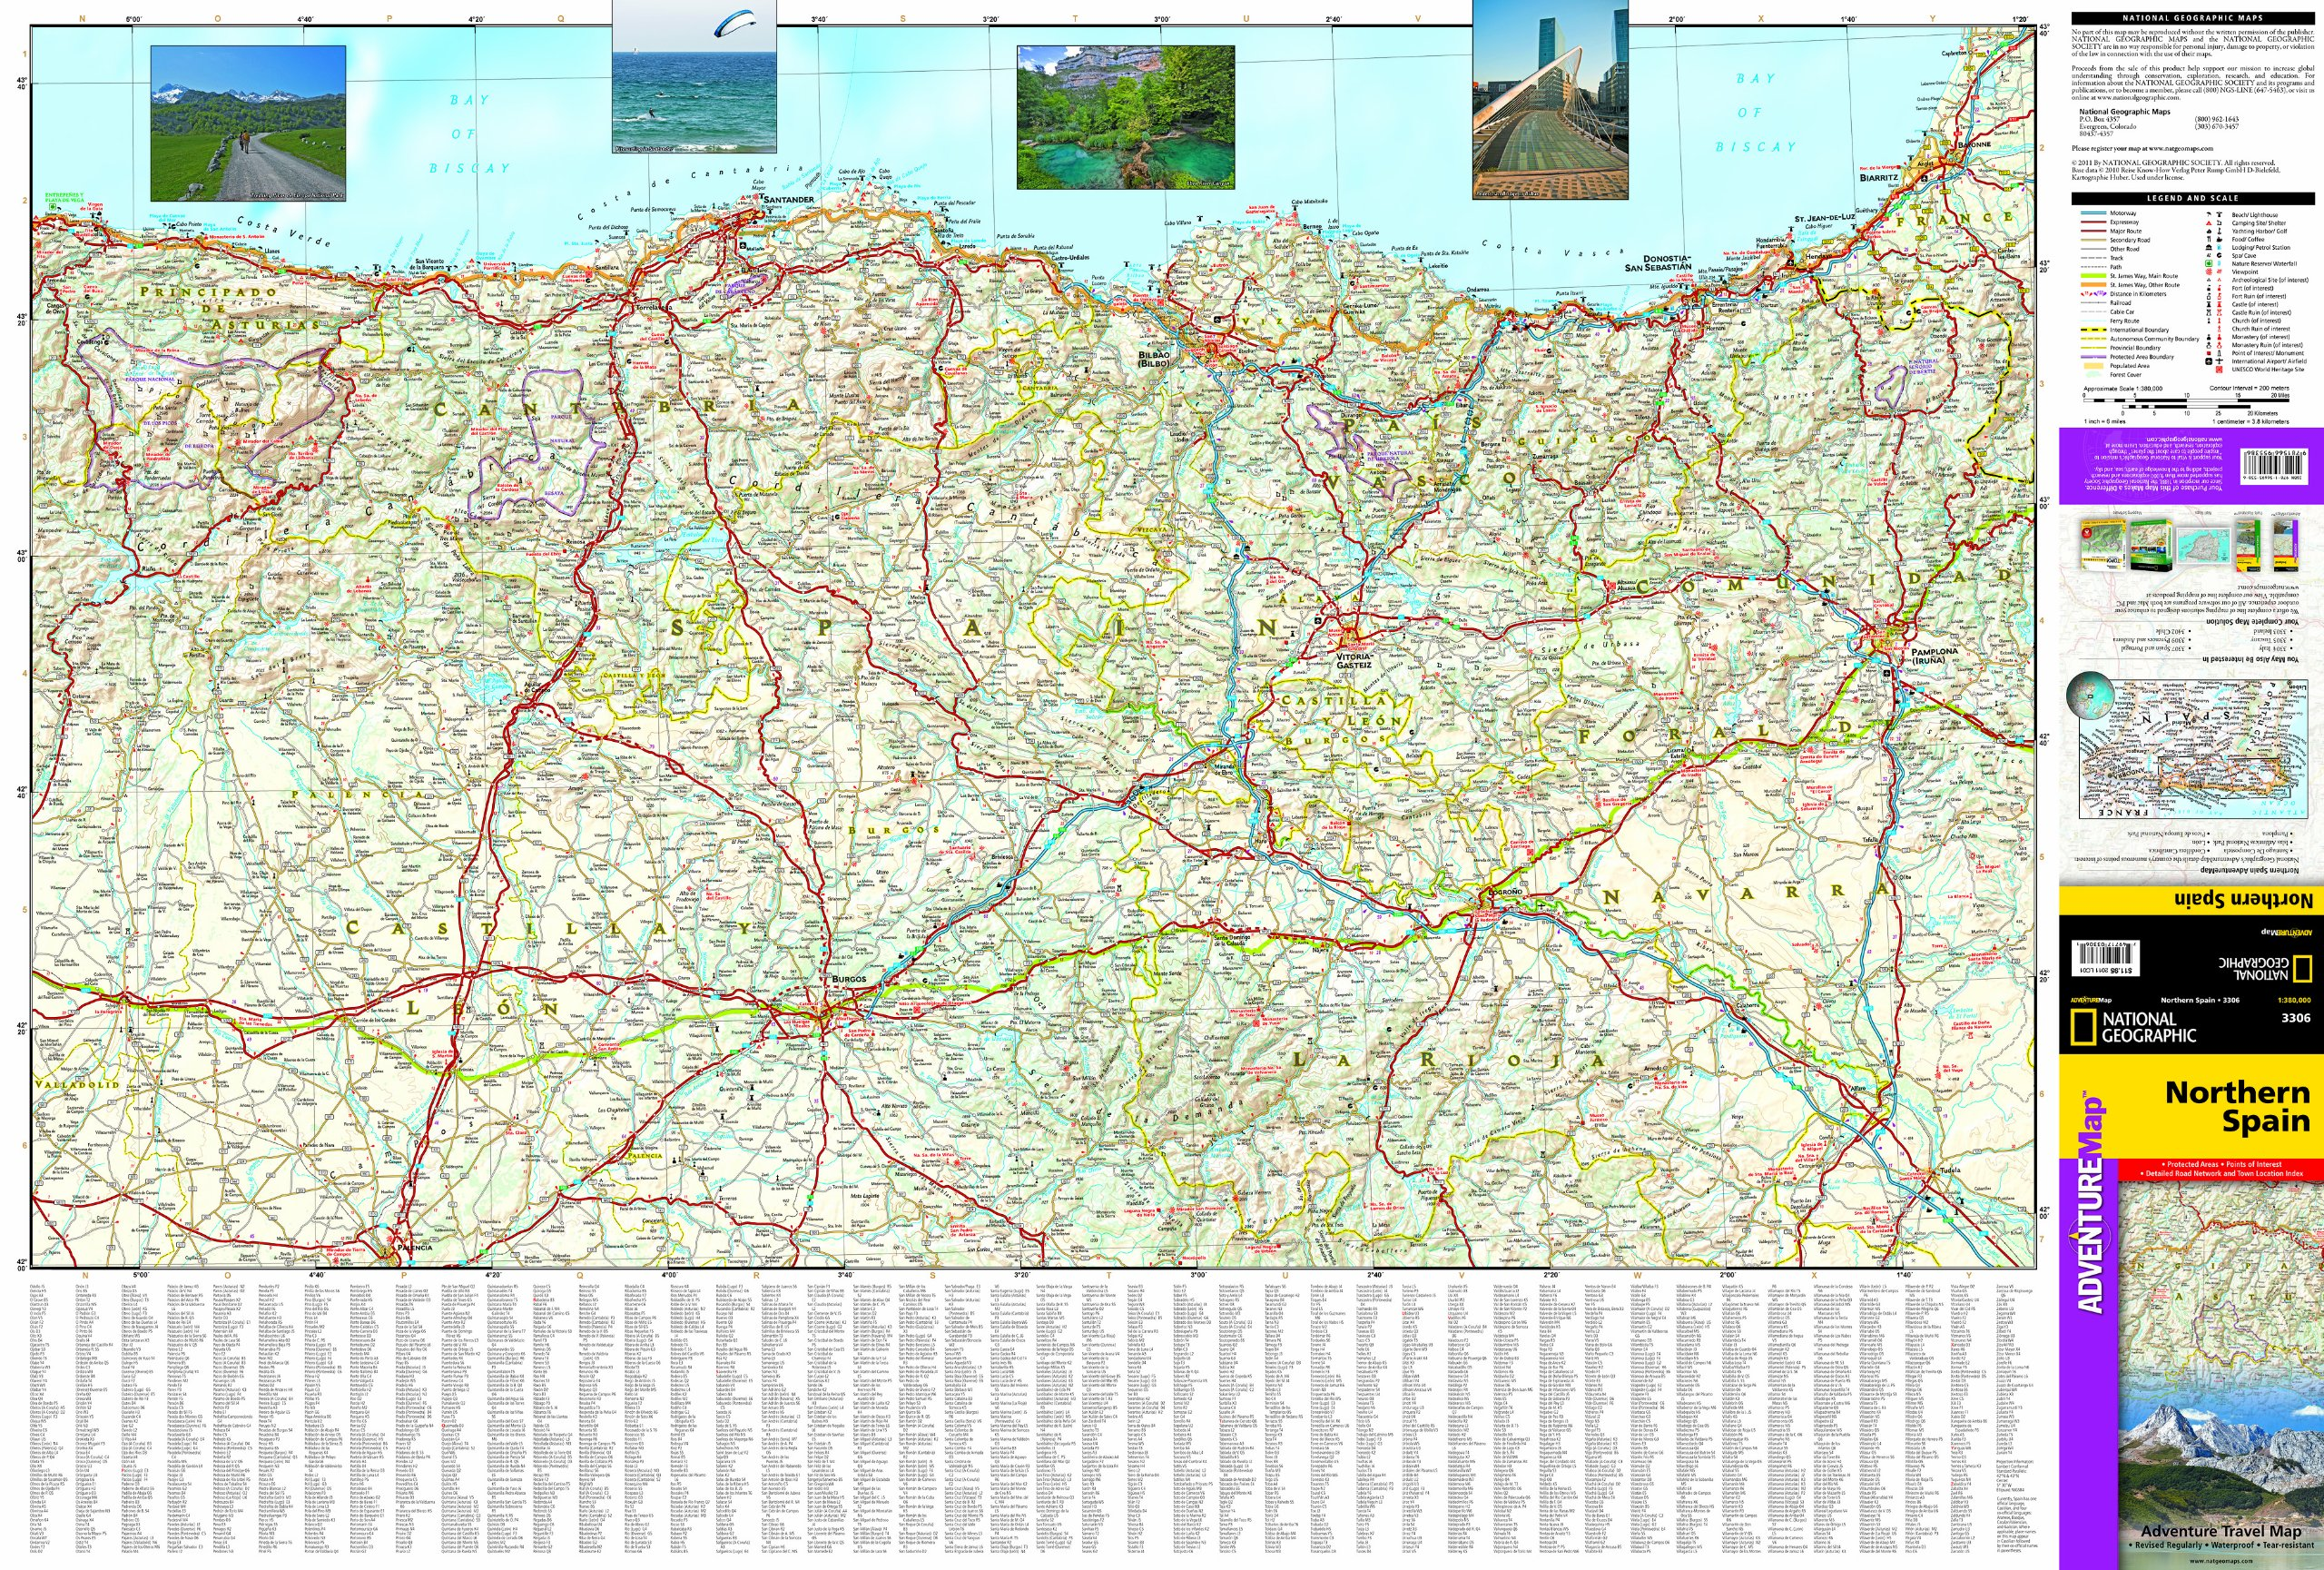 Map Of Northern Spain.Northern Spain National Geographic Adventure Map National